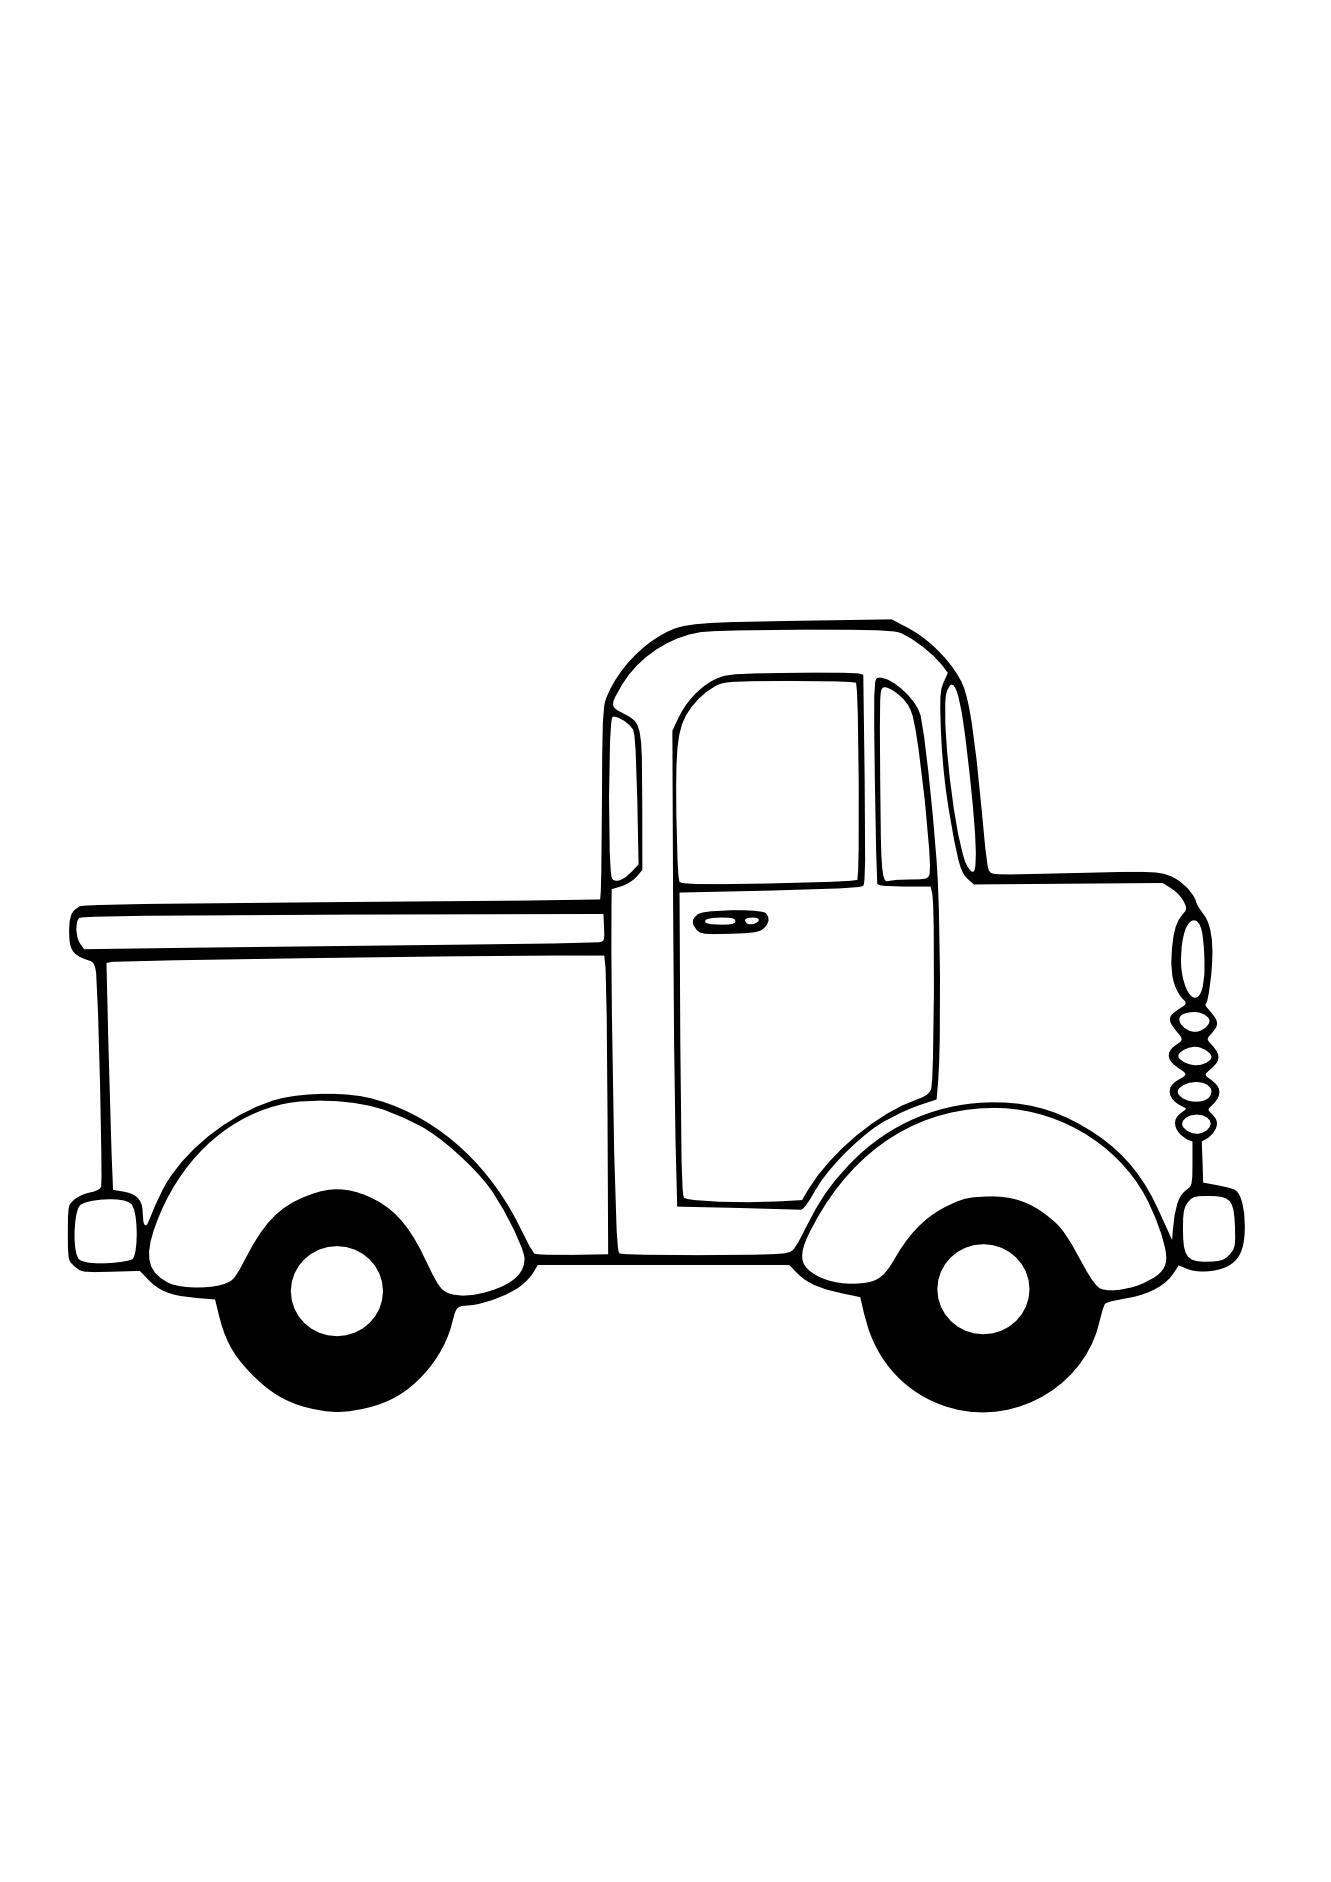 Farmer clipart old fashioned. Image of car black